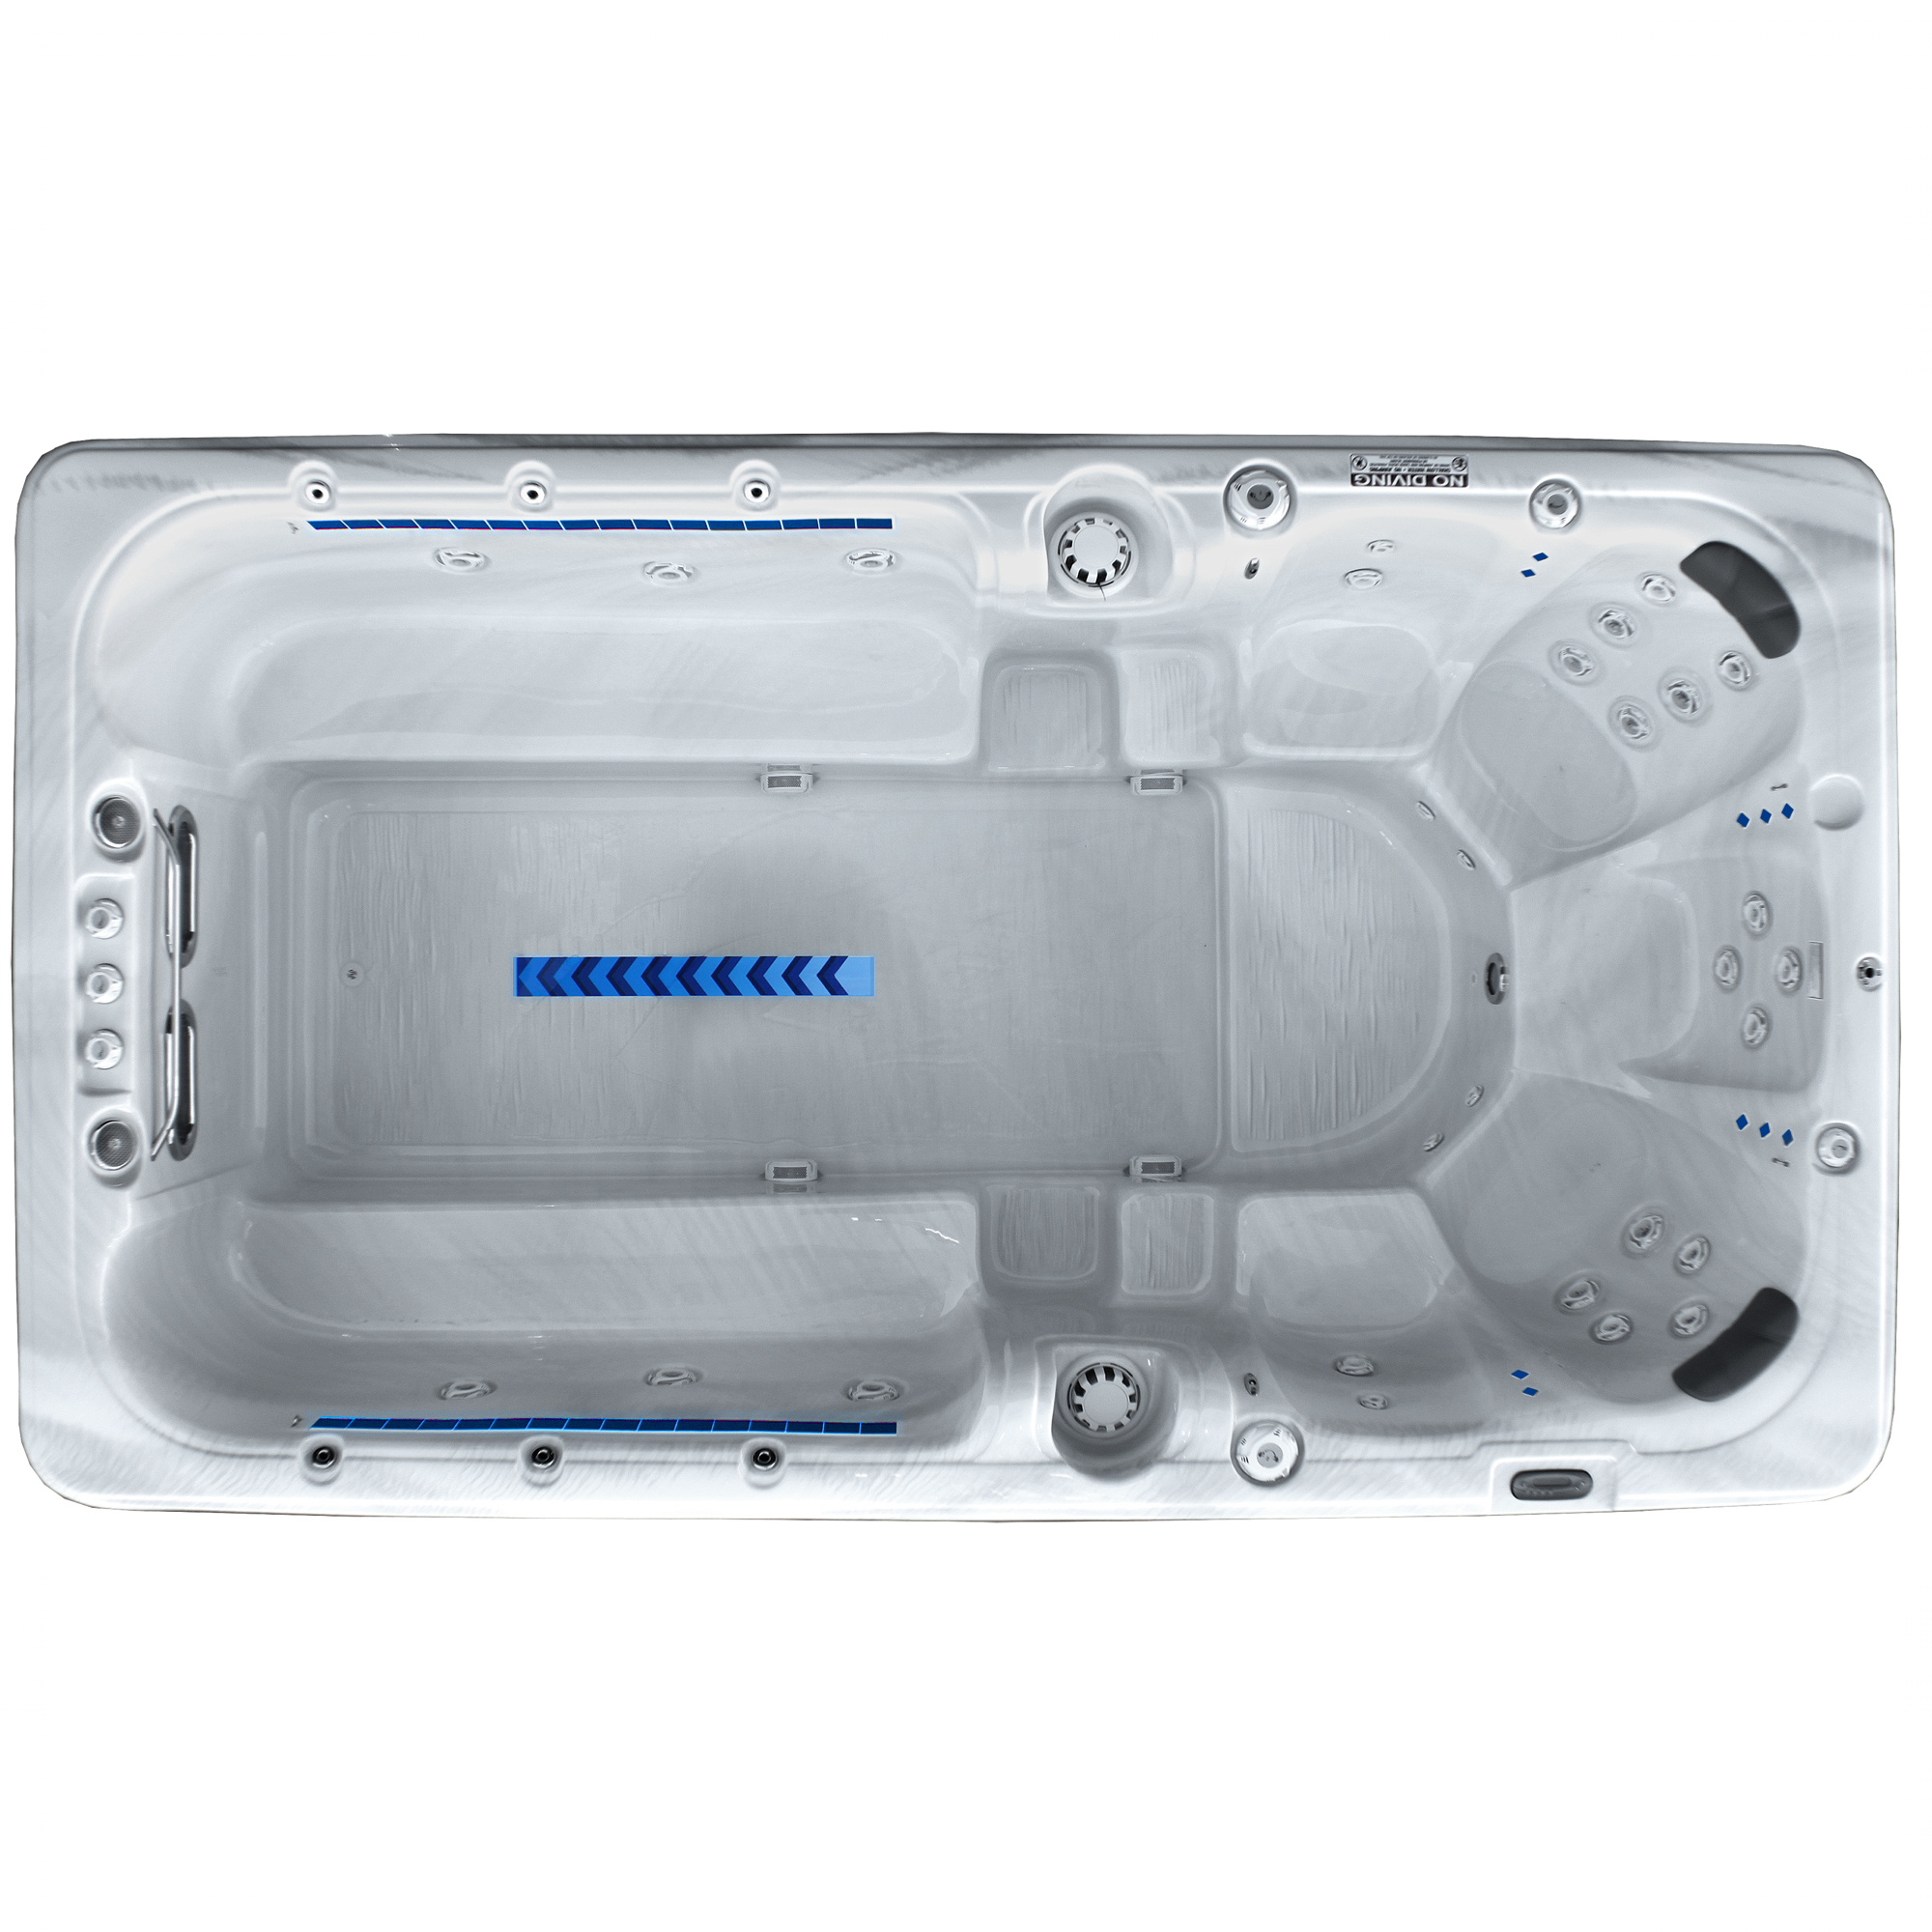 mp pro 13000 swim spa top view